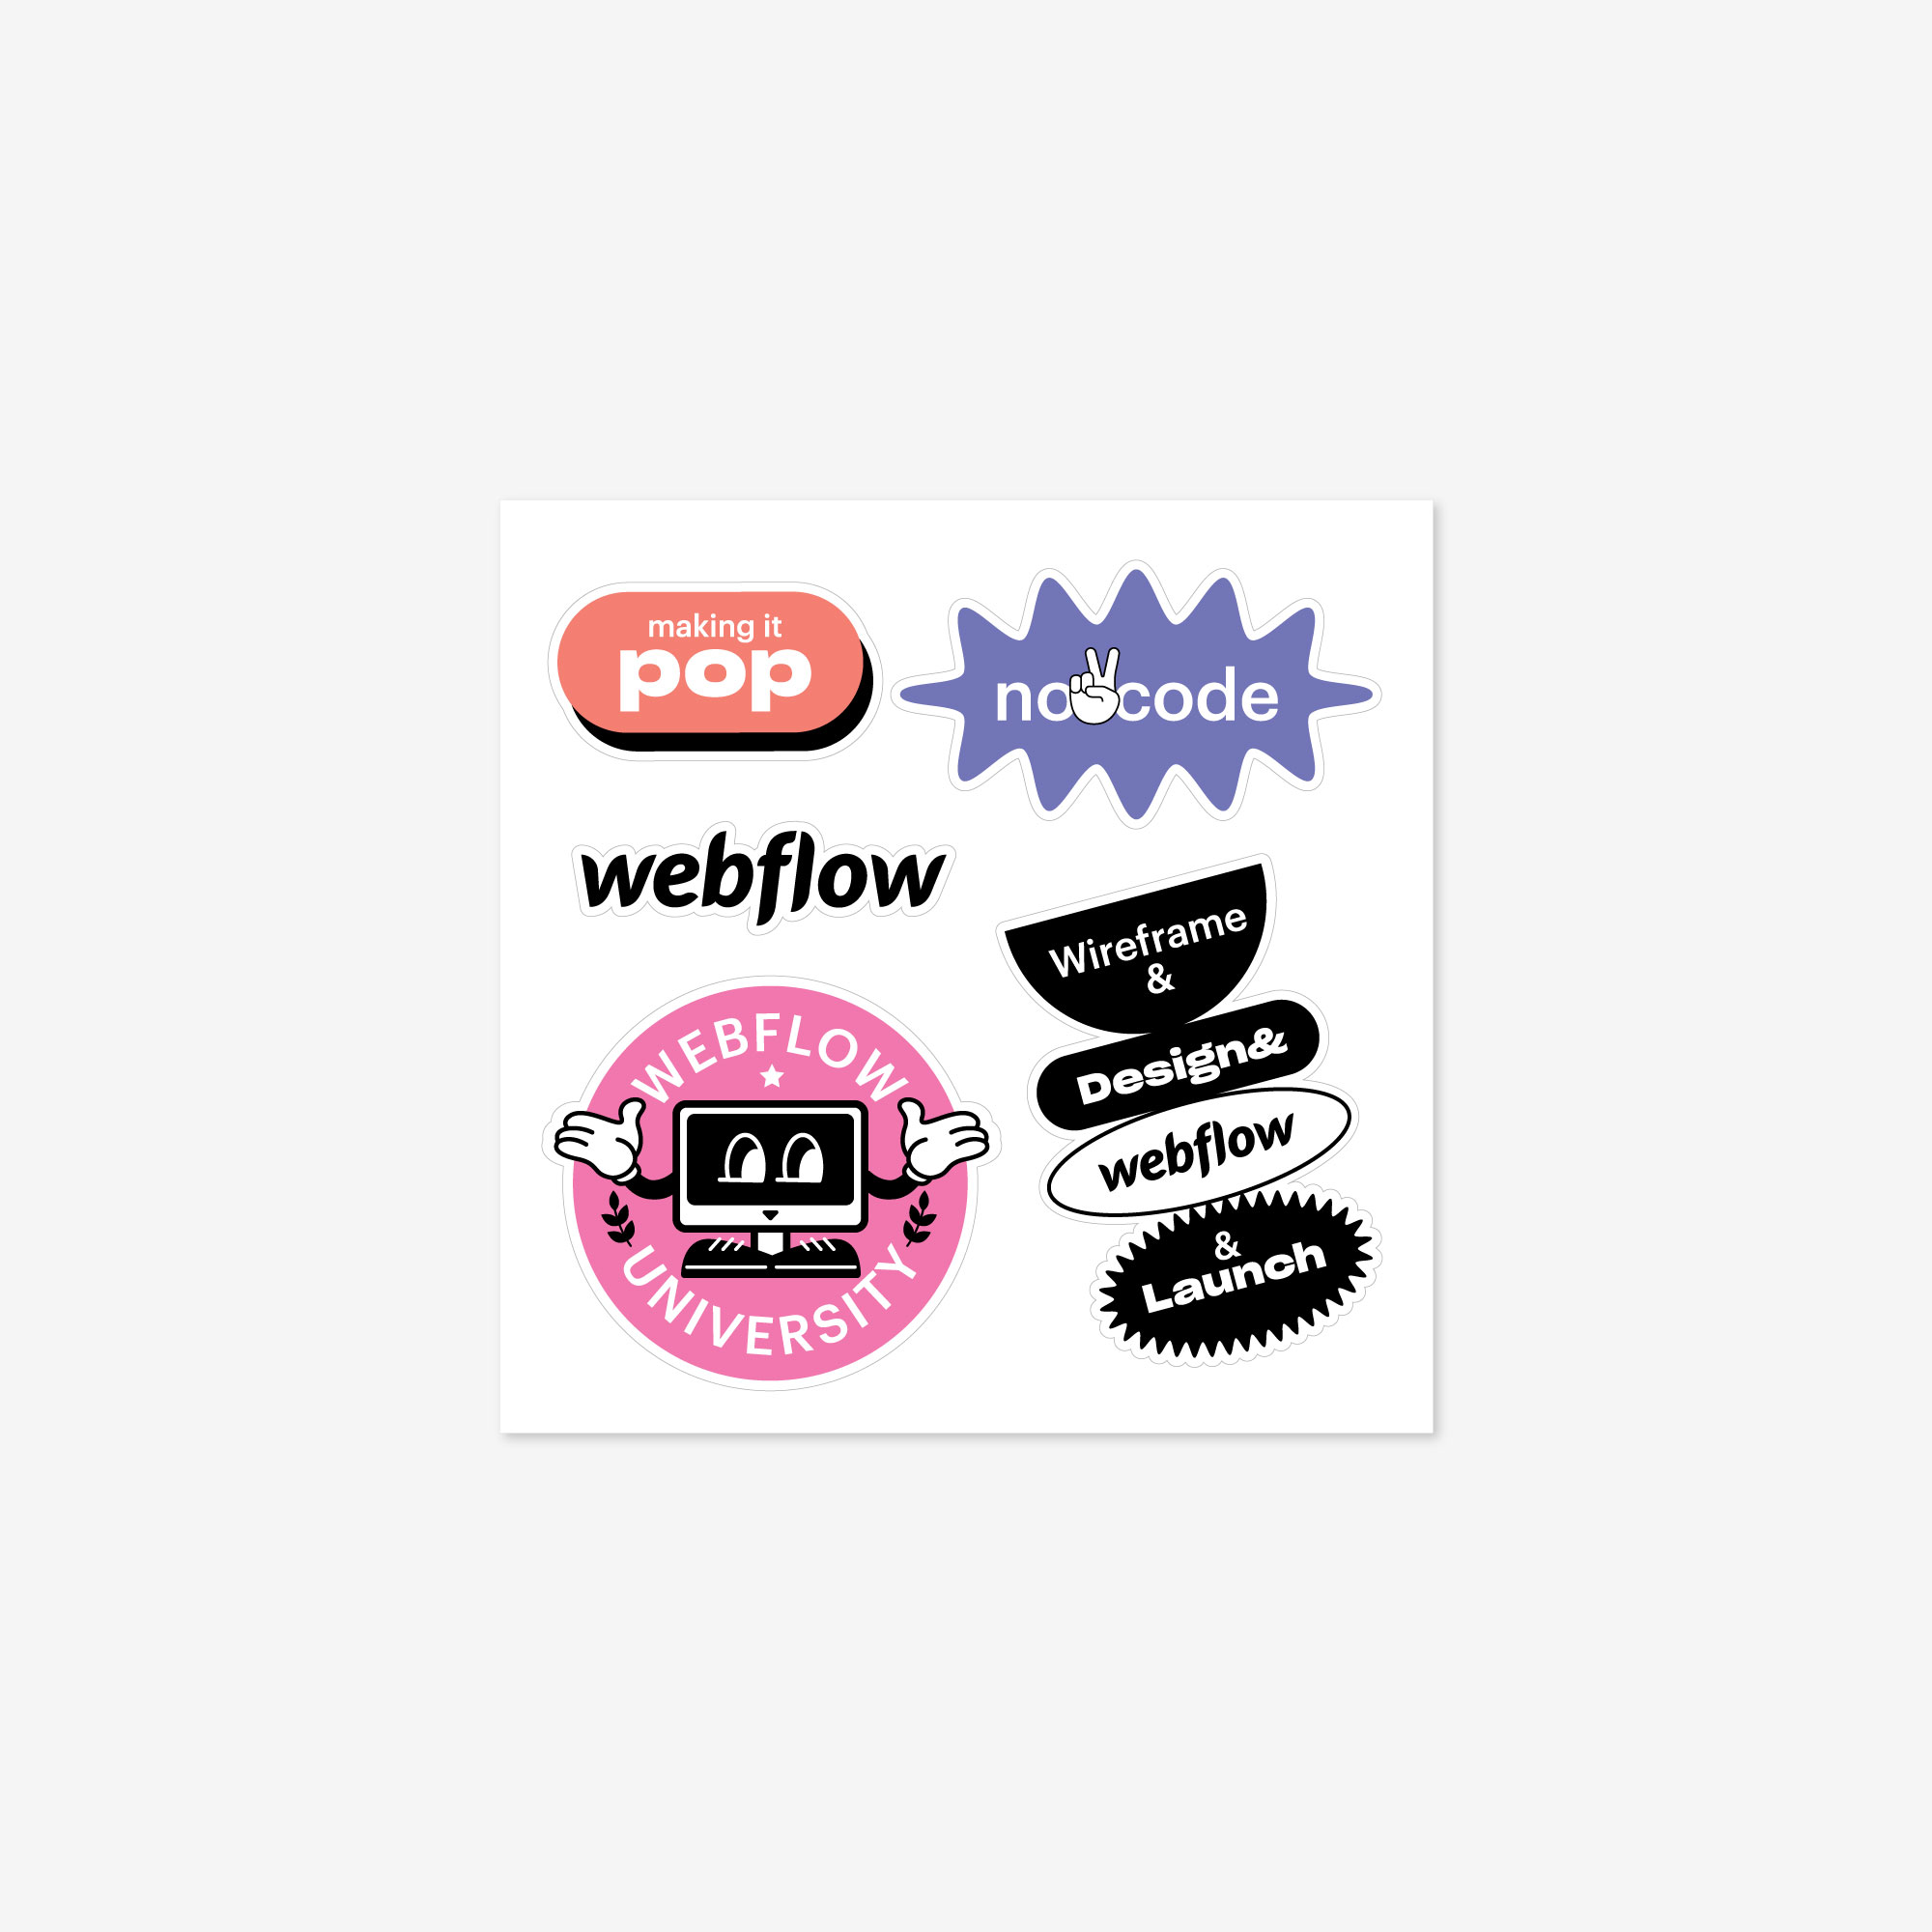 "A white backed sticker sheet with 5 stickers in different shapes saying ""making it pop"", ""no code"", ""webflow university"", and ""Wireframe & Design & Webflow & Launch"", plus a sticker of the Webflow logo."